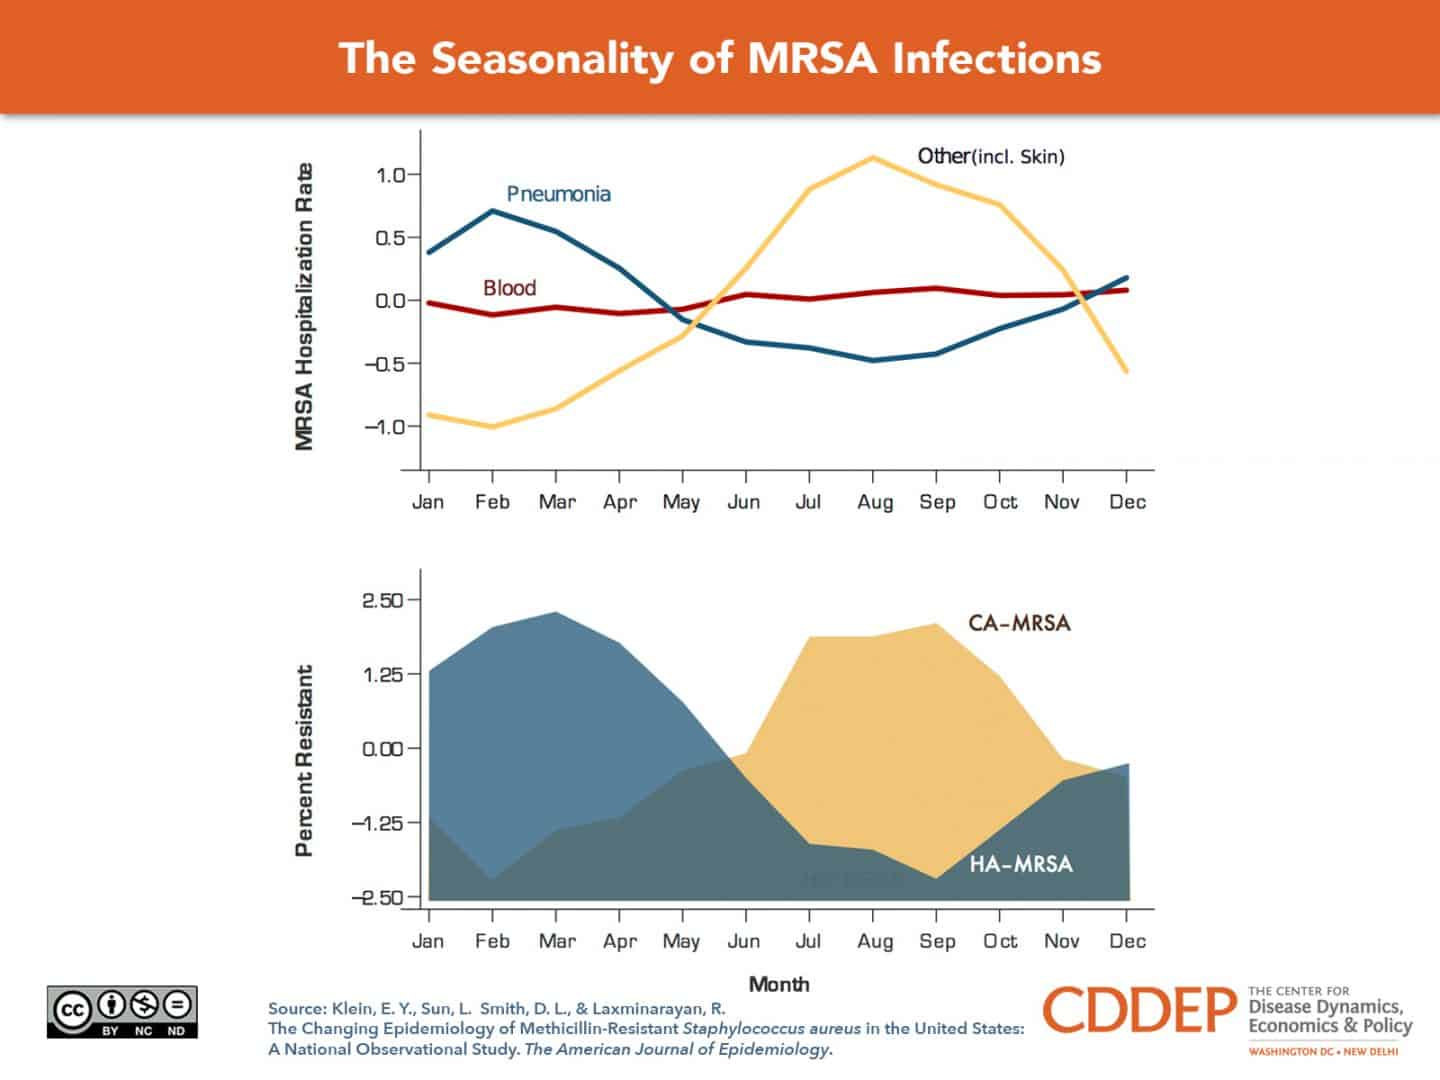 Community-associated MRSA peaks in summer, as do skin and soft tissue infections